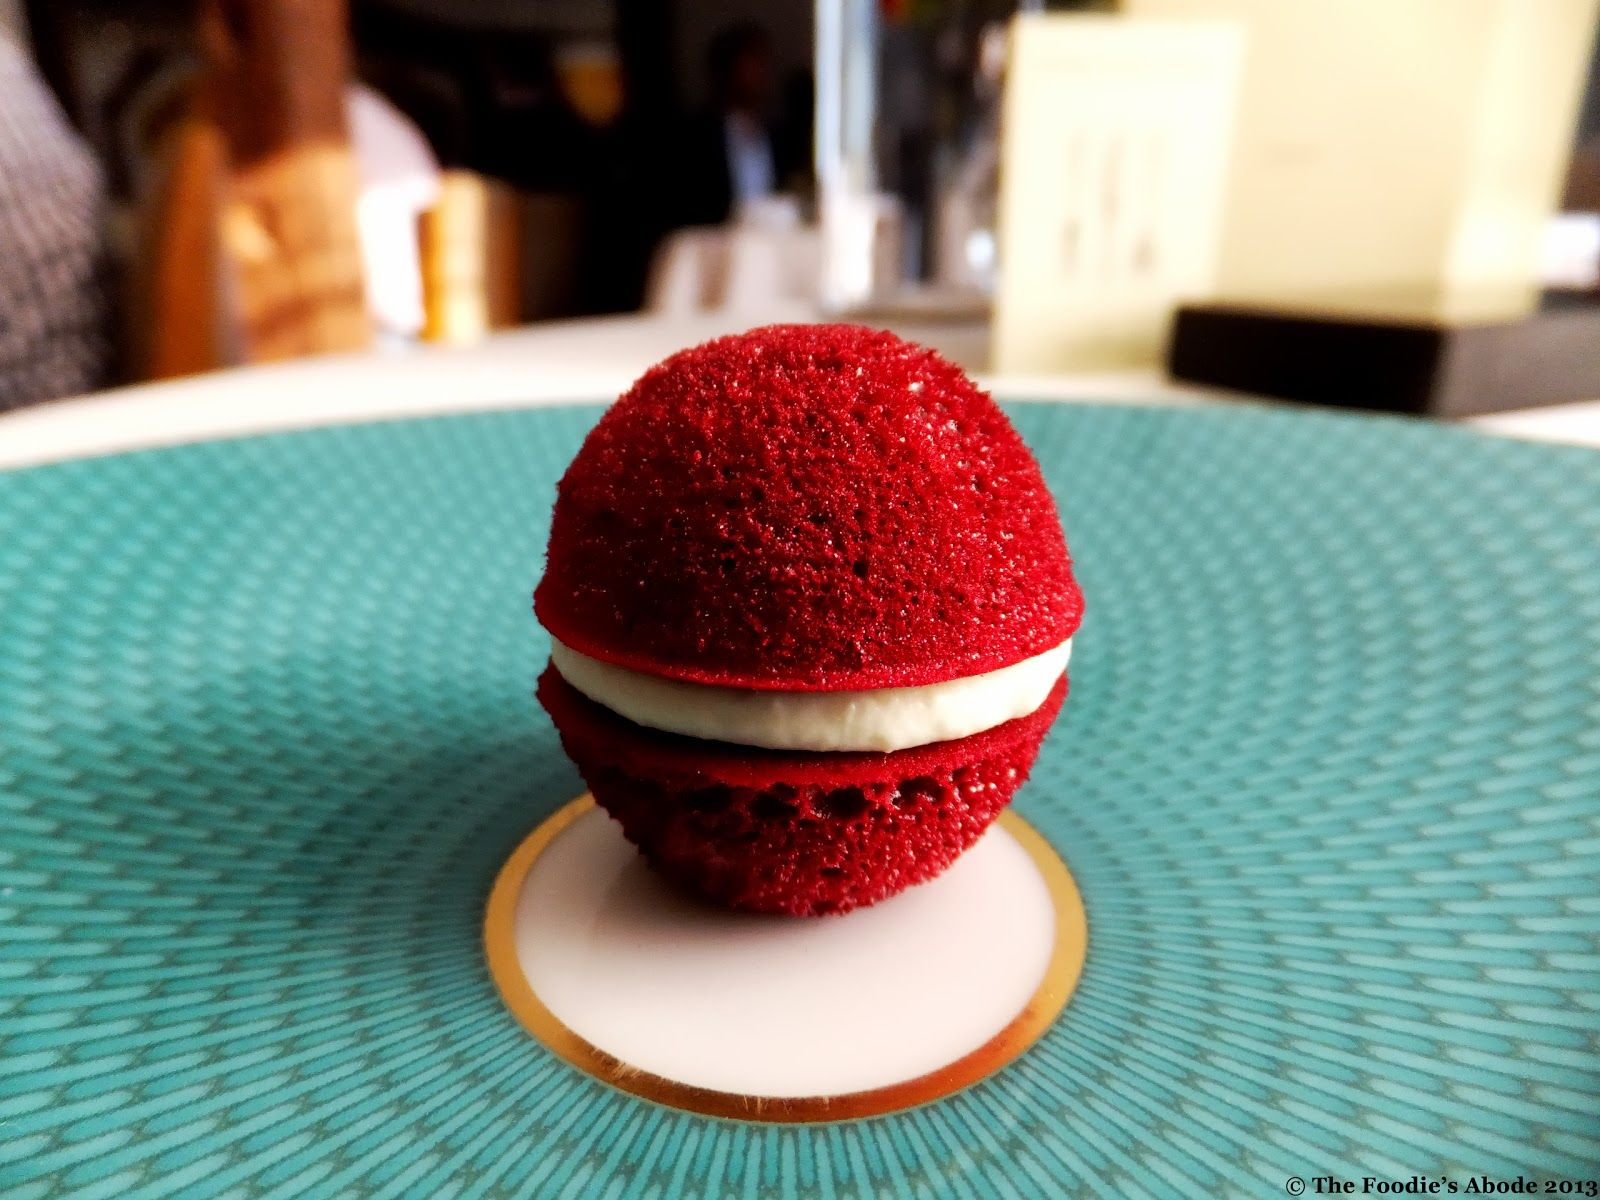 17 best fat duck melbourne images on Pinterest | Melbourne, Fat and ...